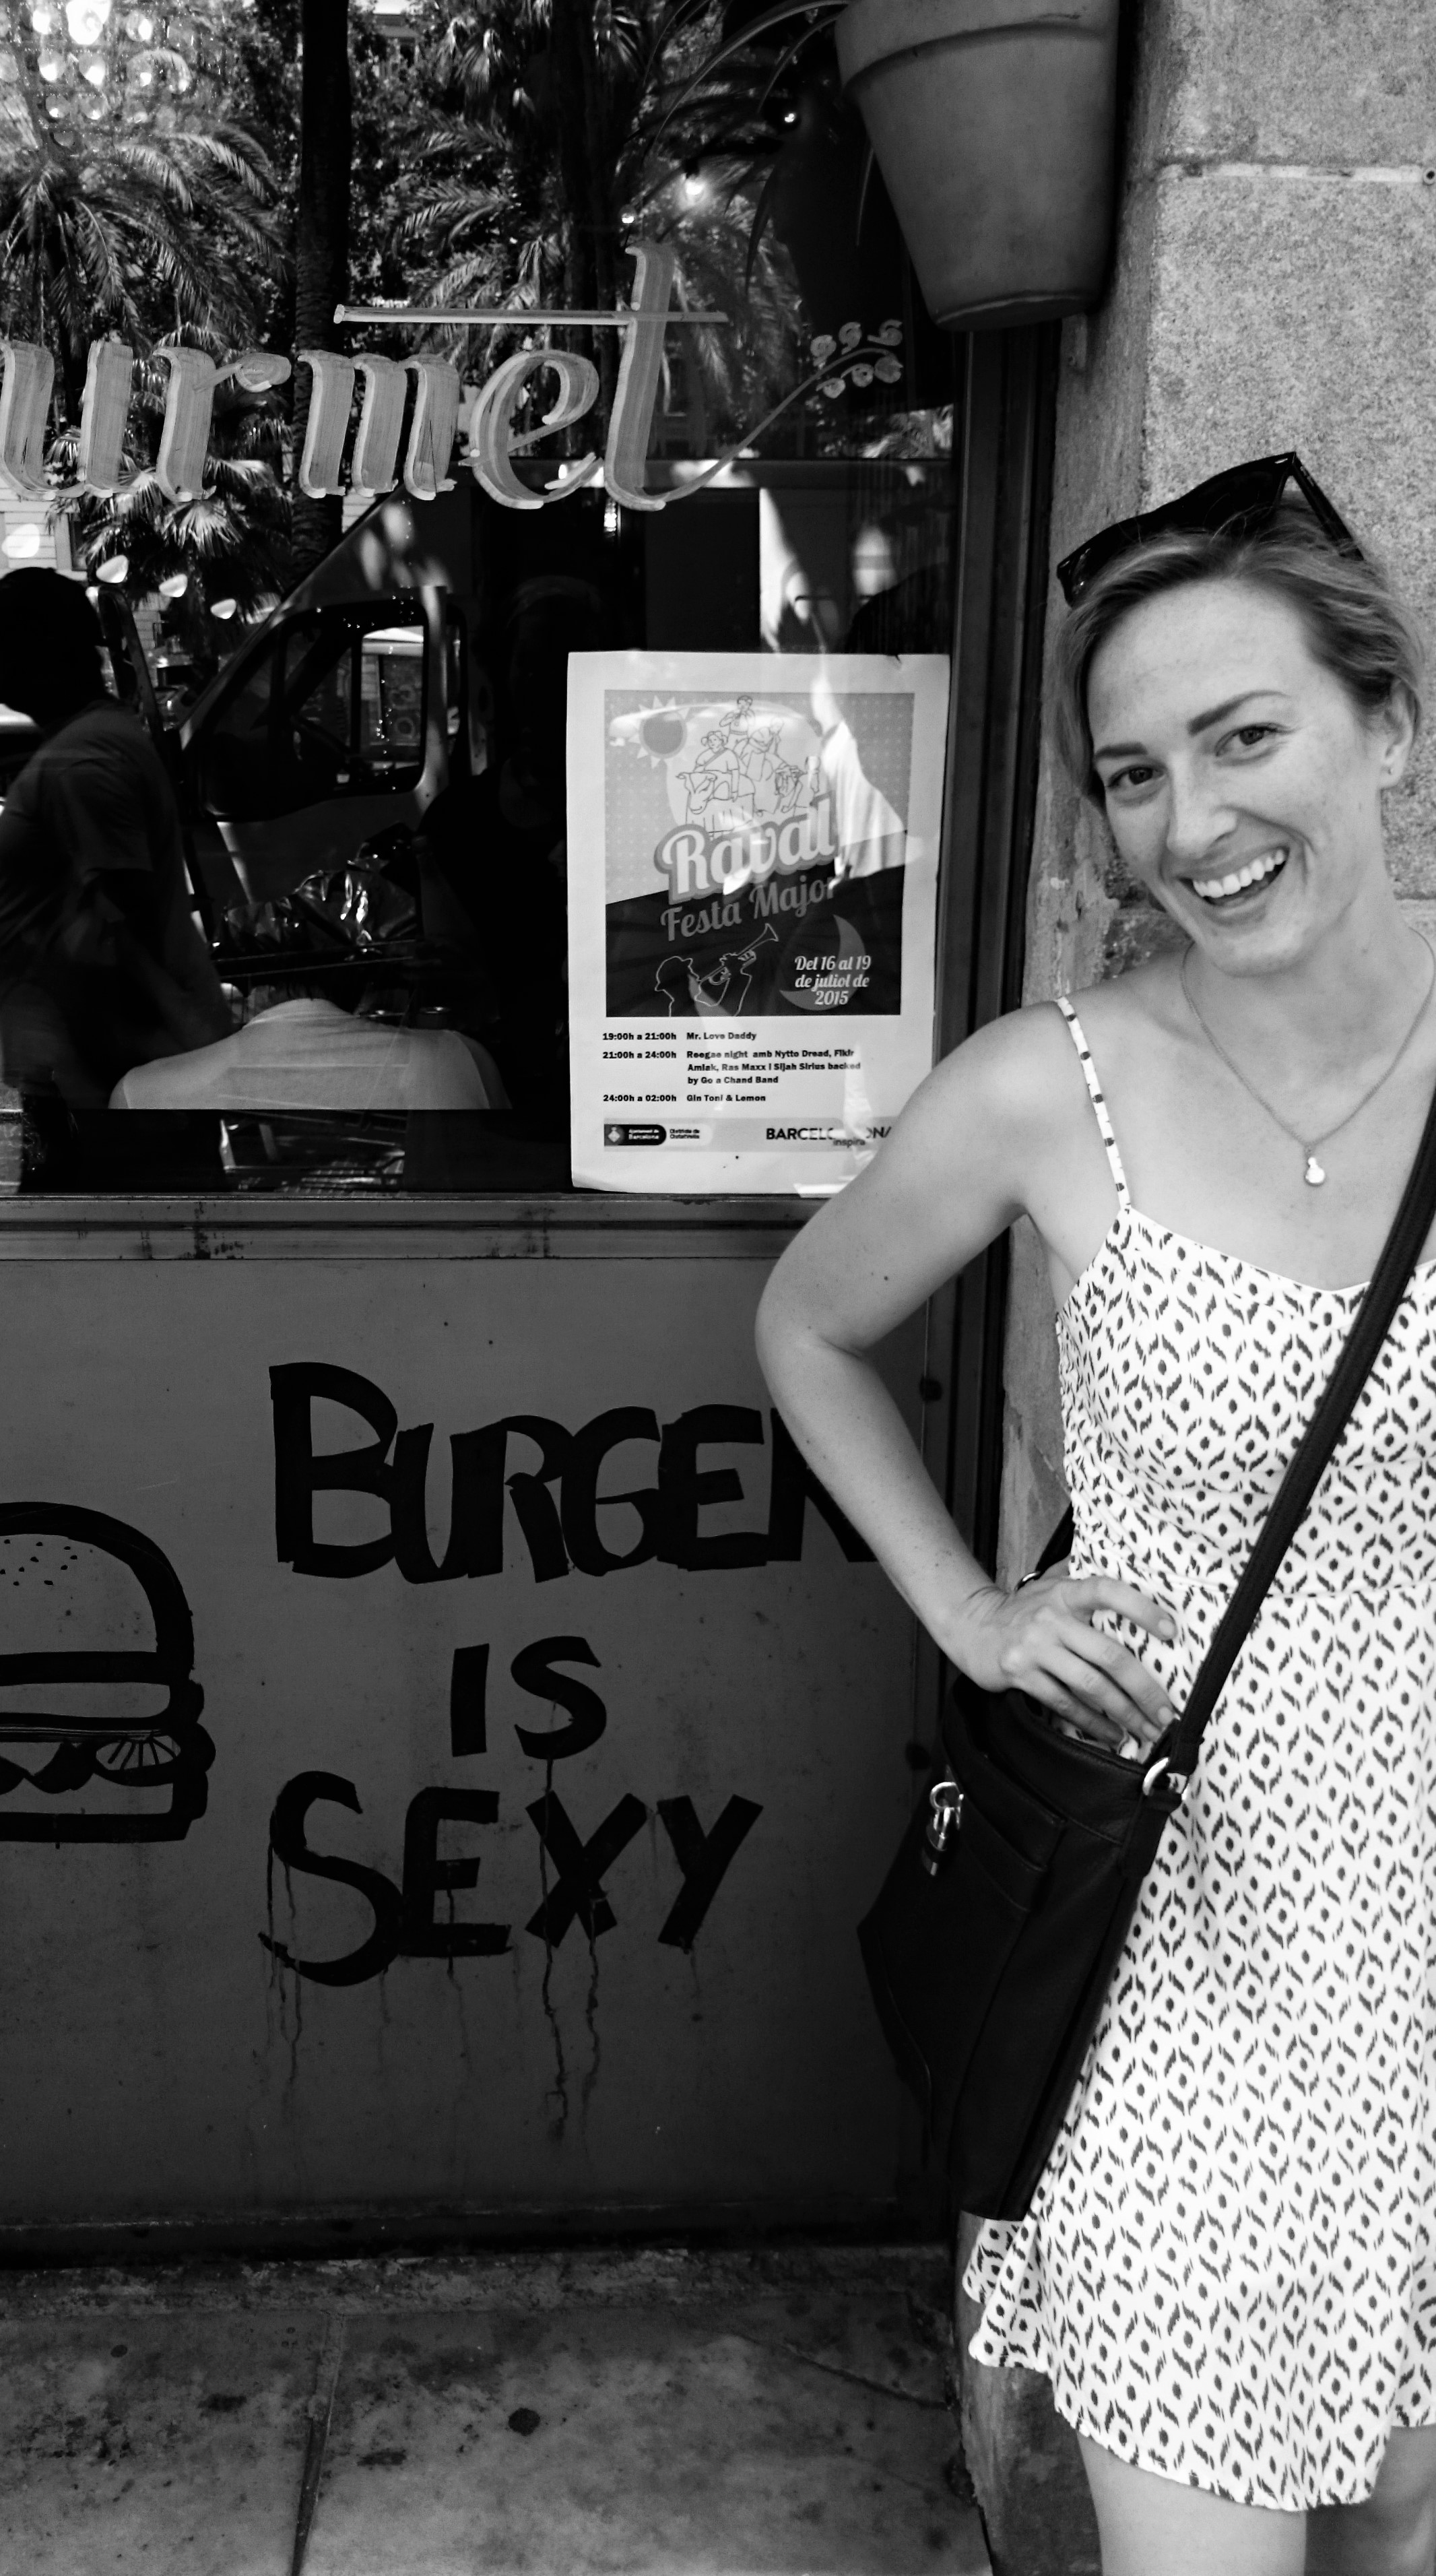 TRUTH TELLERS | You know it's true, burger *IS* sexy